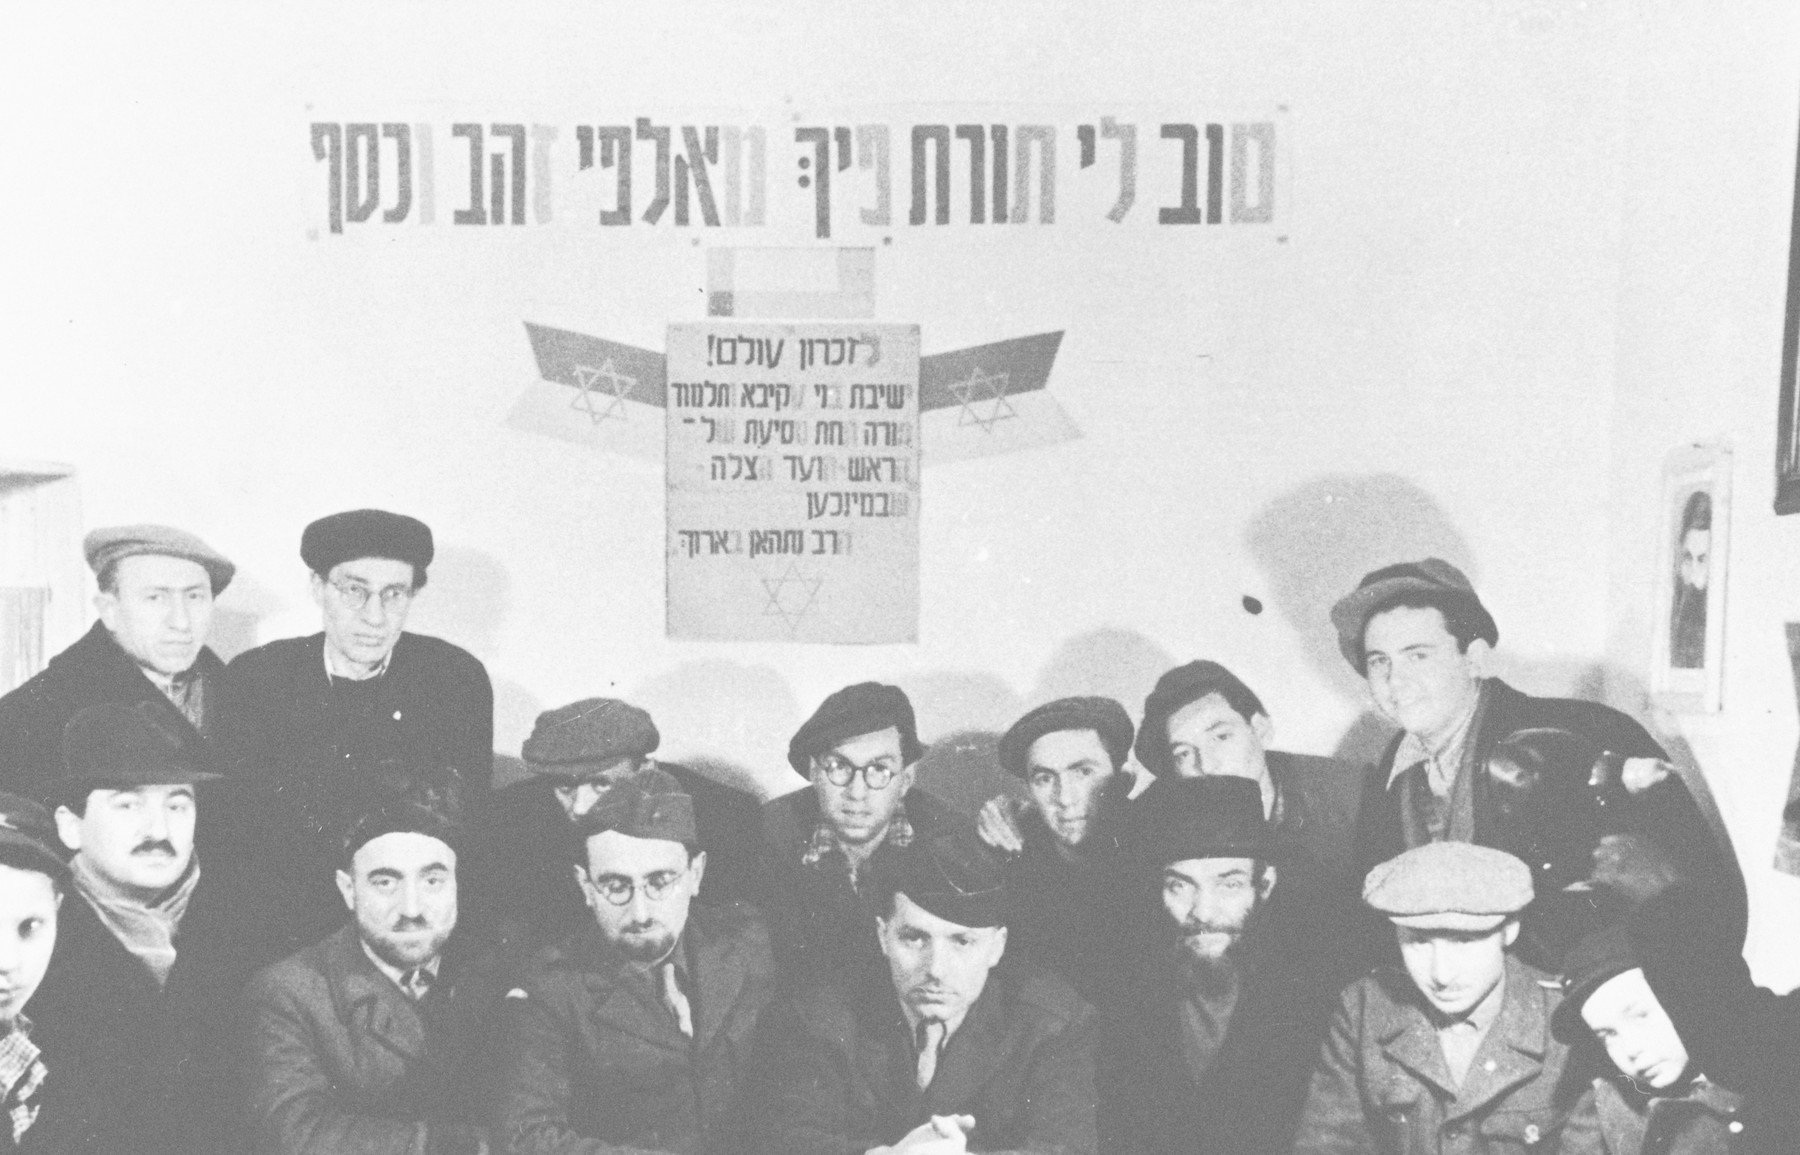 """Group portrait of participants in a meeting of the Mizrachi religious Zionists in Aschau.  Rabbi Nathan Baruch is pictured in the center and Rabbi Aviezer Burstein is pictured to his left.  The sign on the back reads """"The words of Torah from your mouth are more precious to me than thousands of gold and silver""""."""